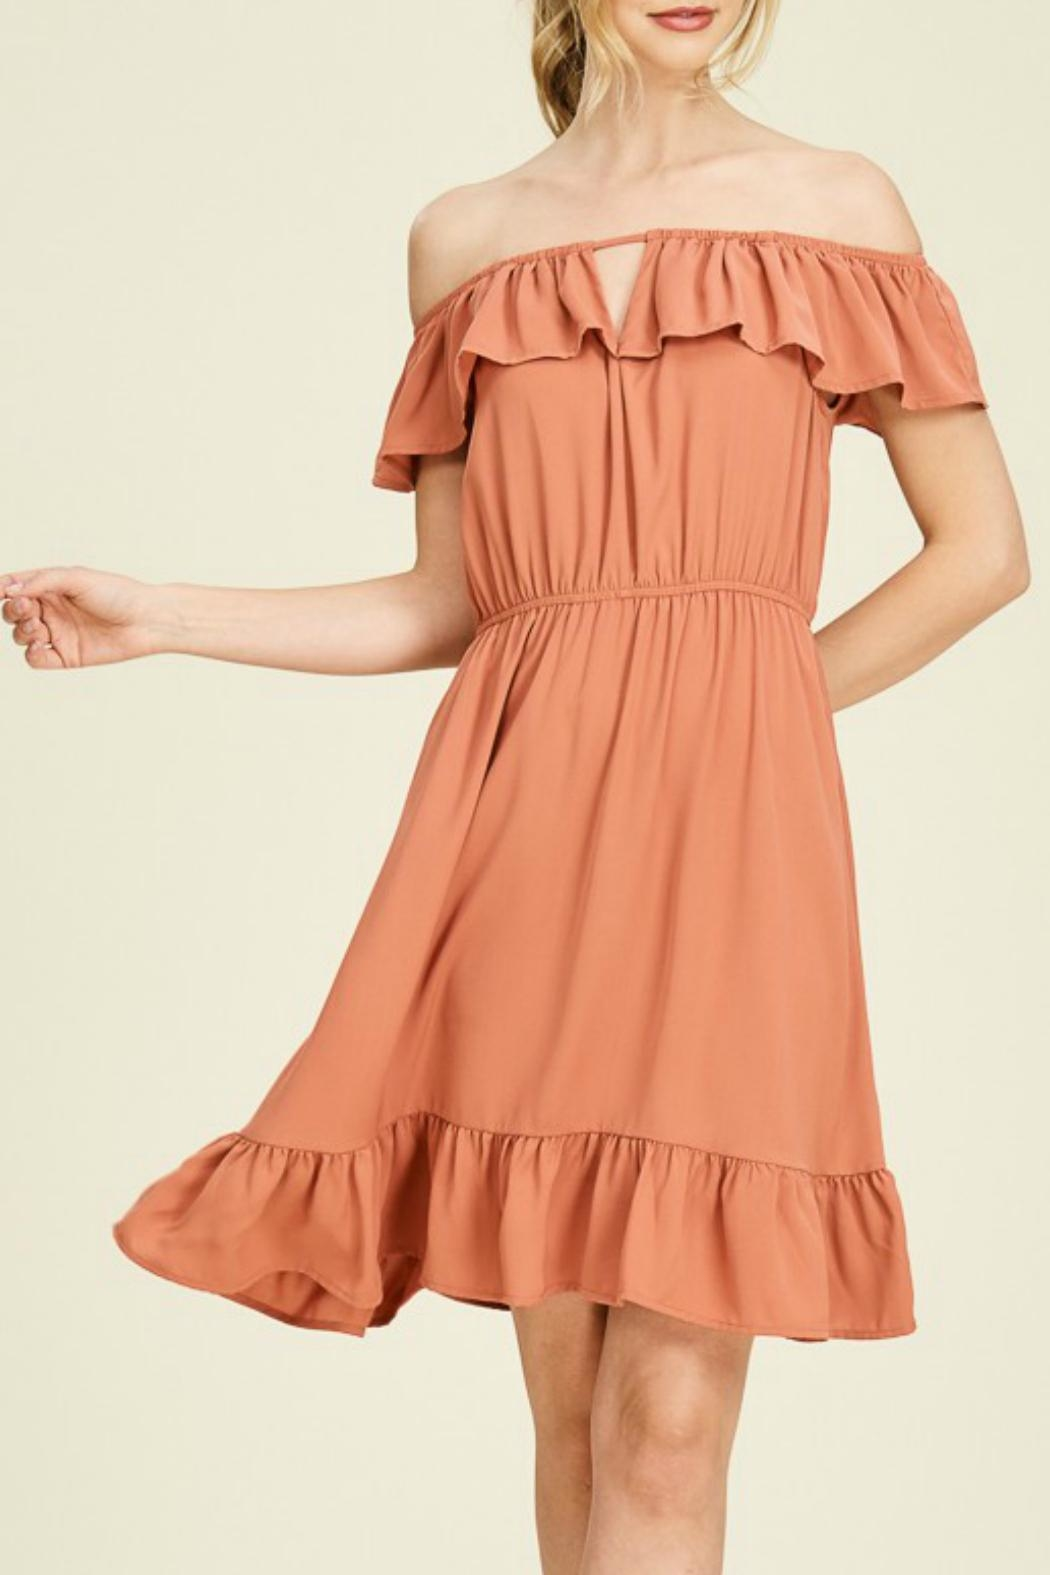 Staccato Rust Off-The-Shoulder Dress - Main Image